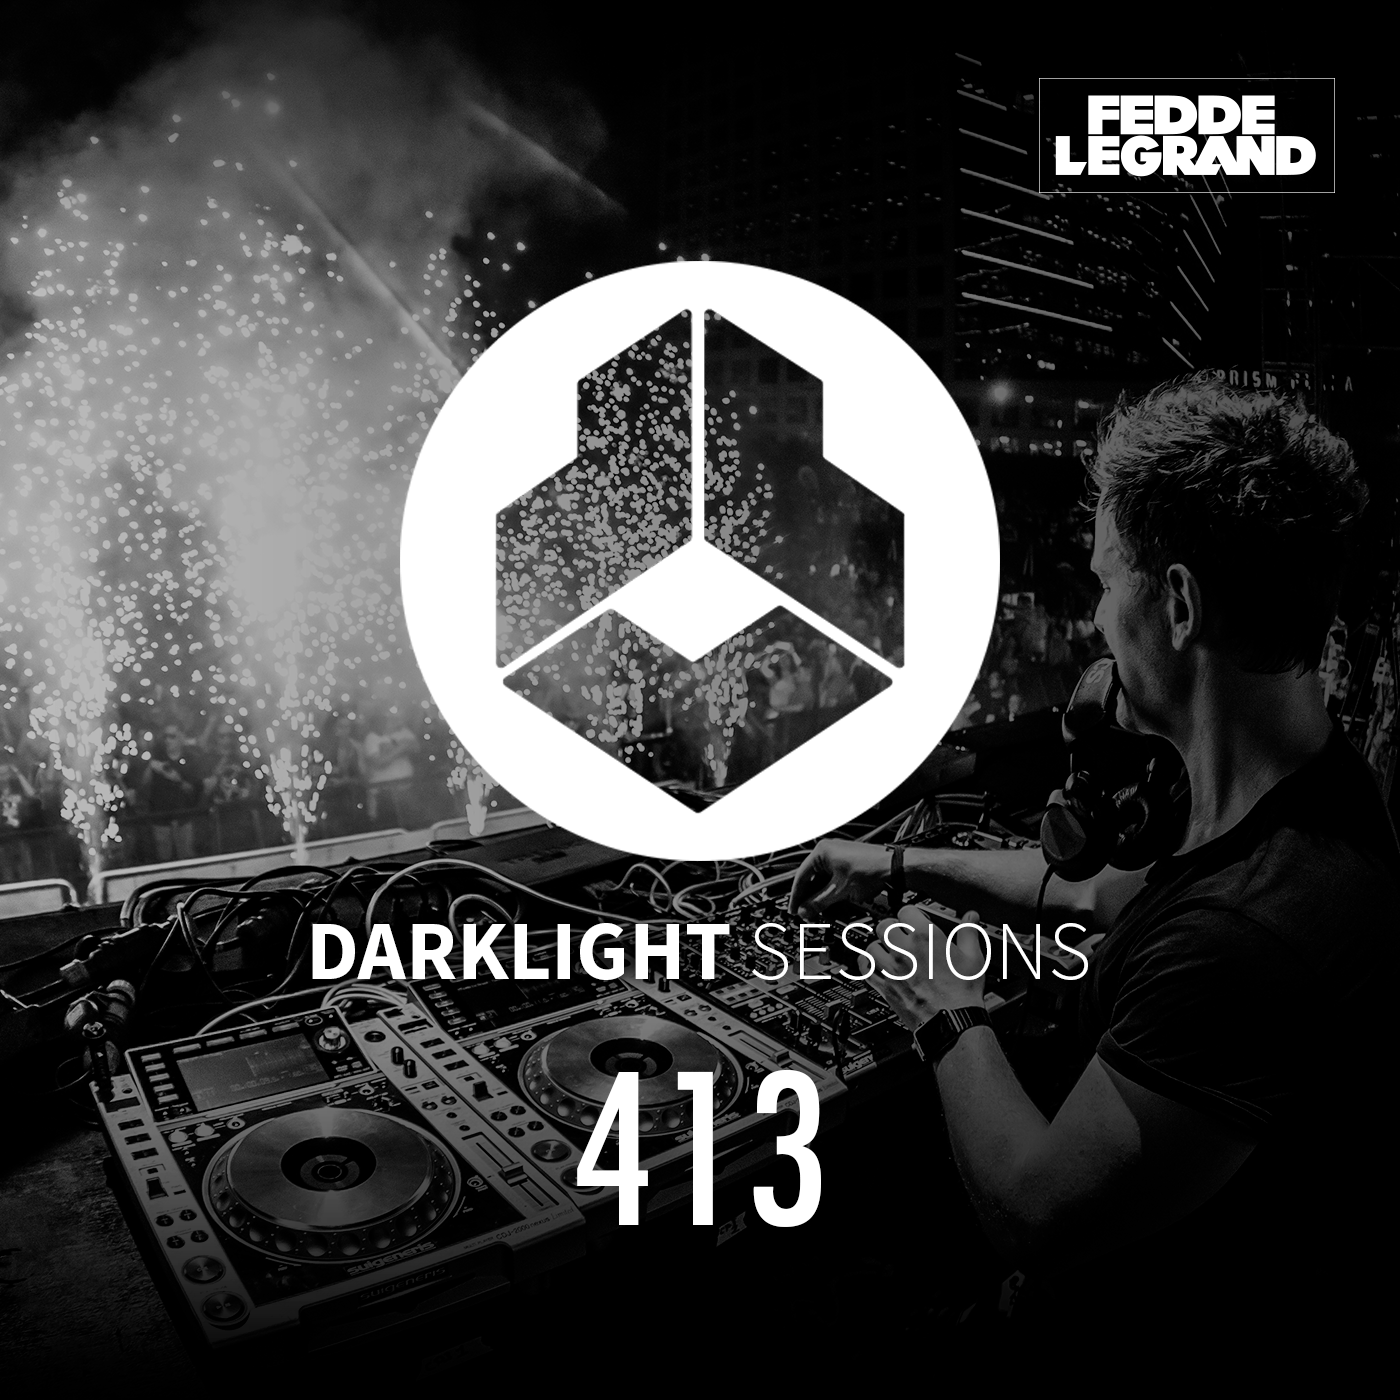 Darklight Sessions 413